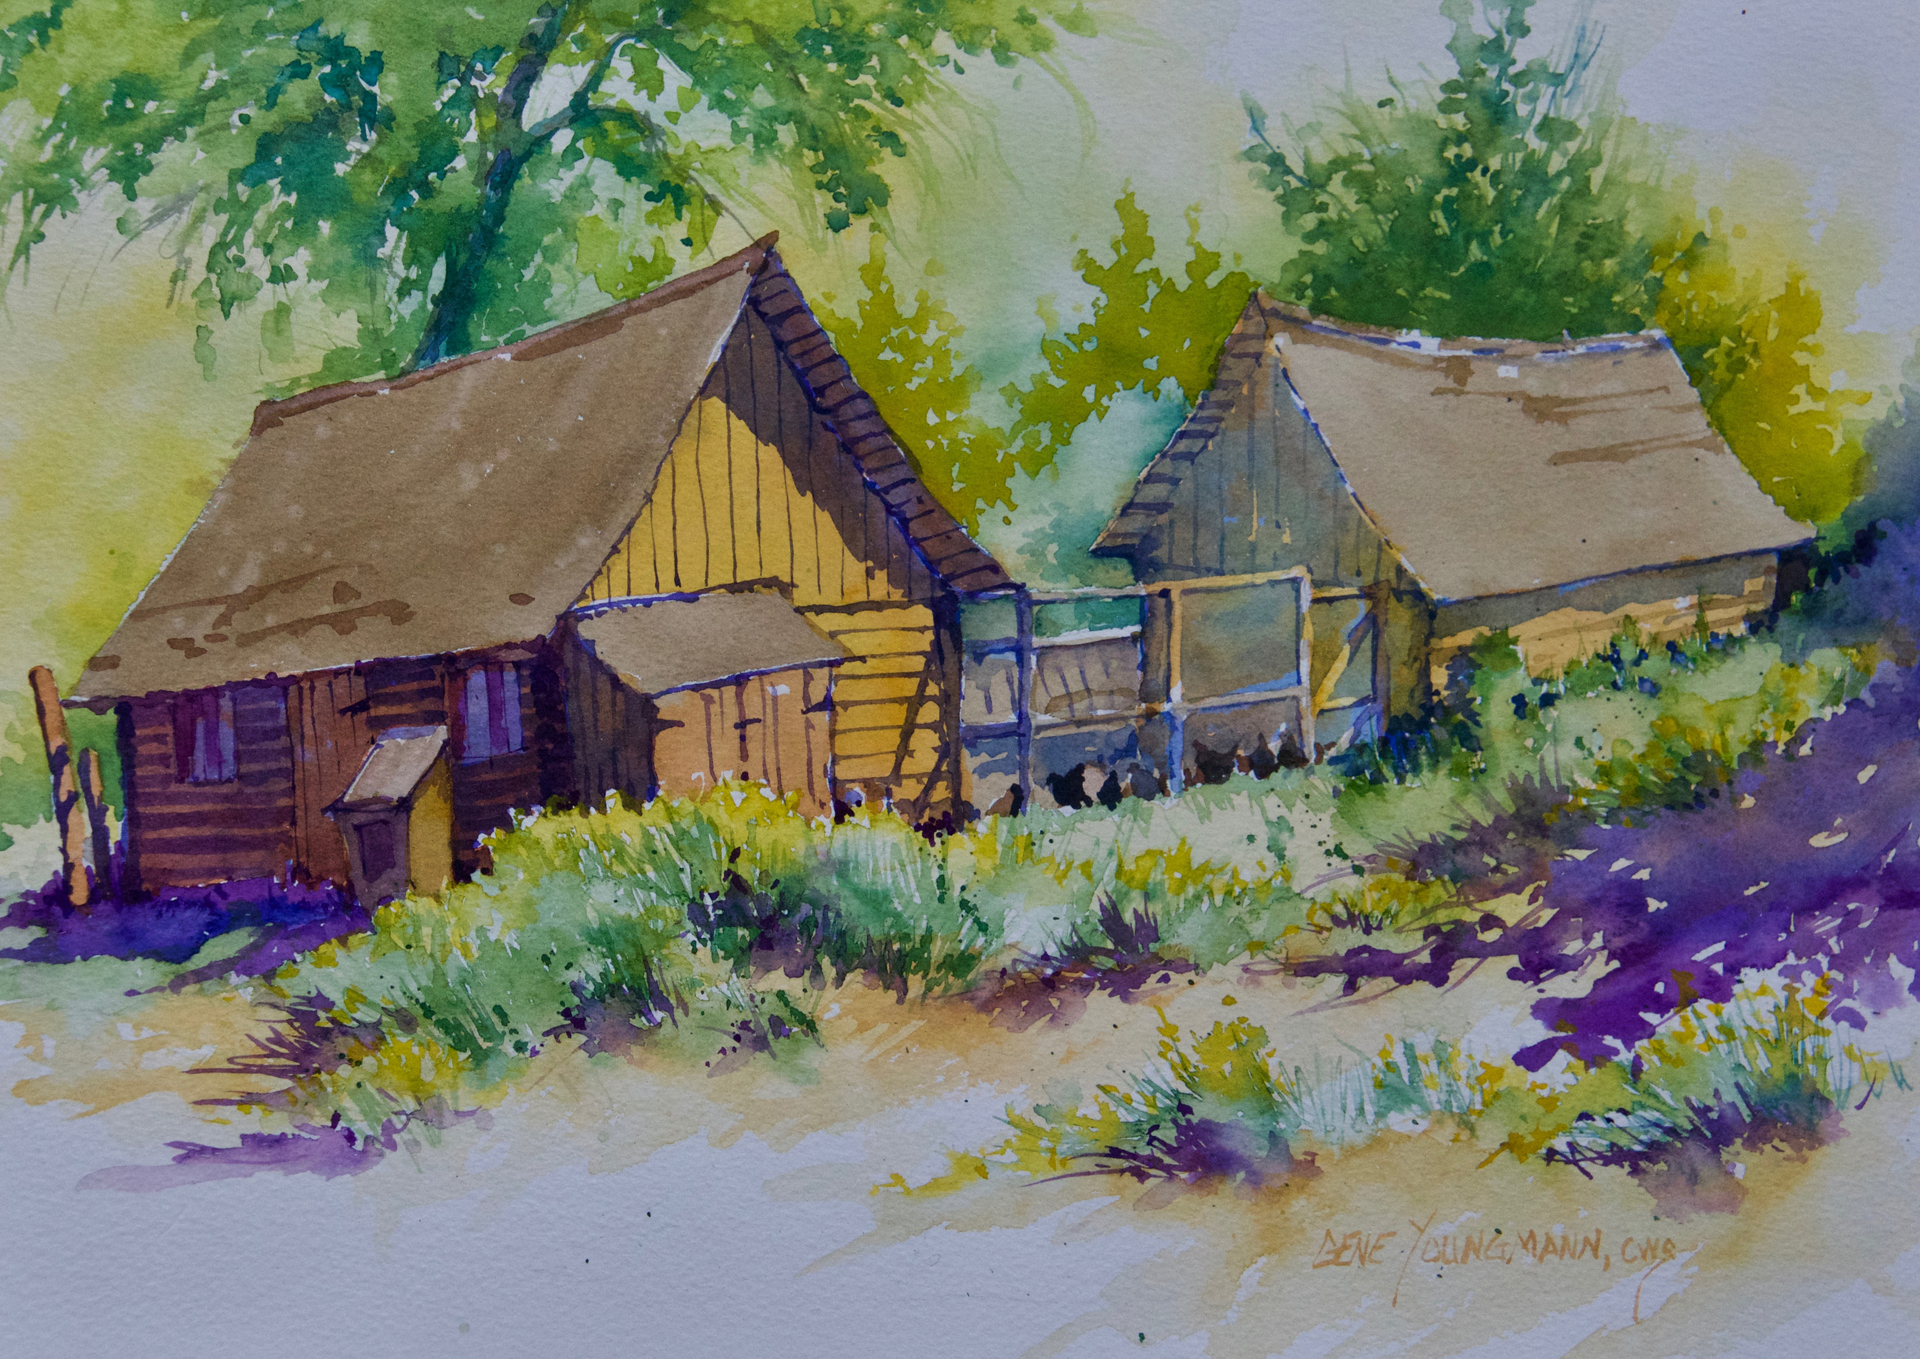 Painting #62 Barn & Chicken Yard